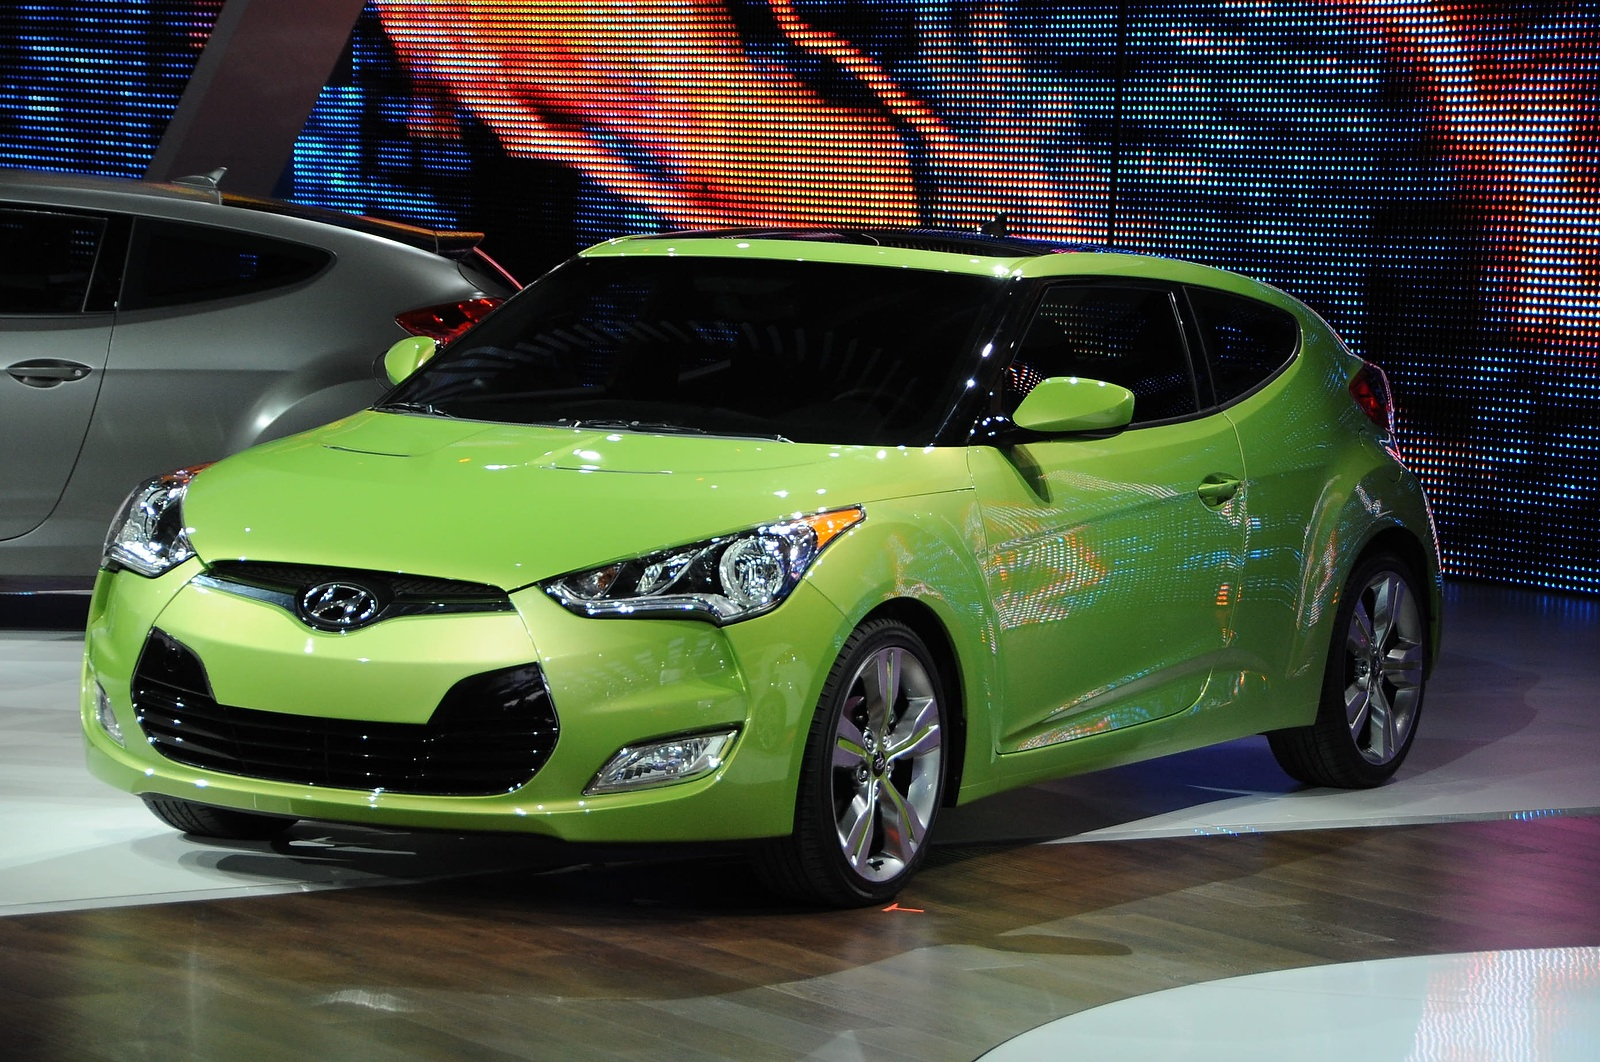 96 The Best 2020 Hyundai Veloster Turbo Release Date and Concept